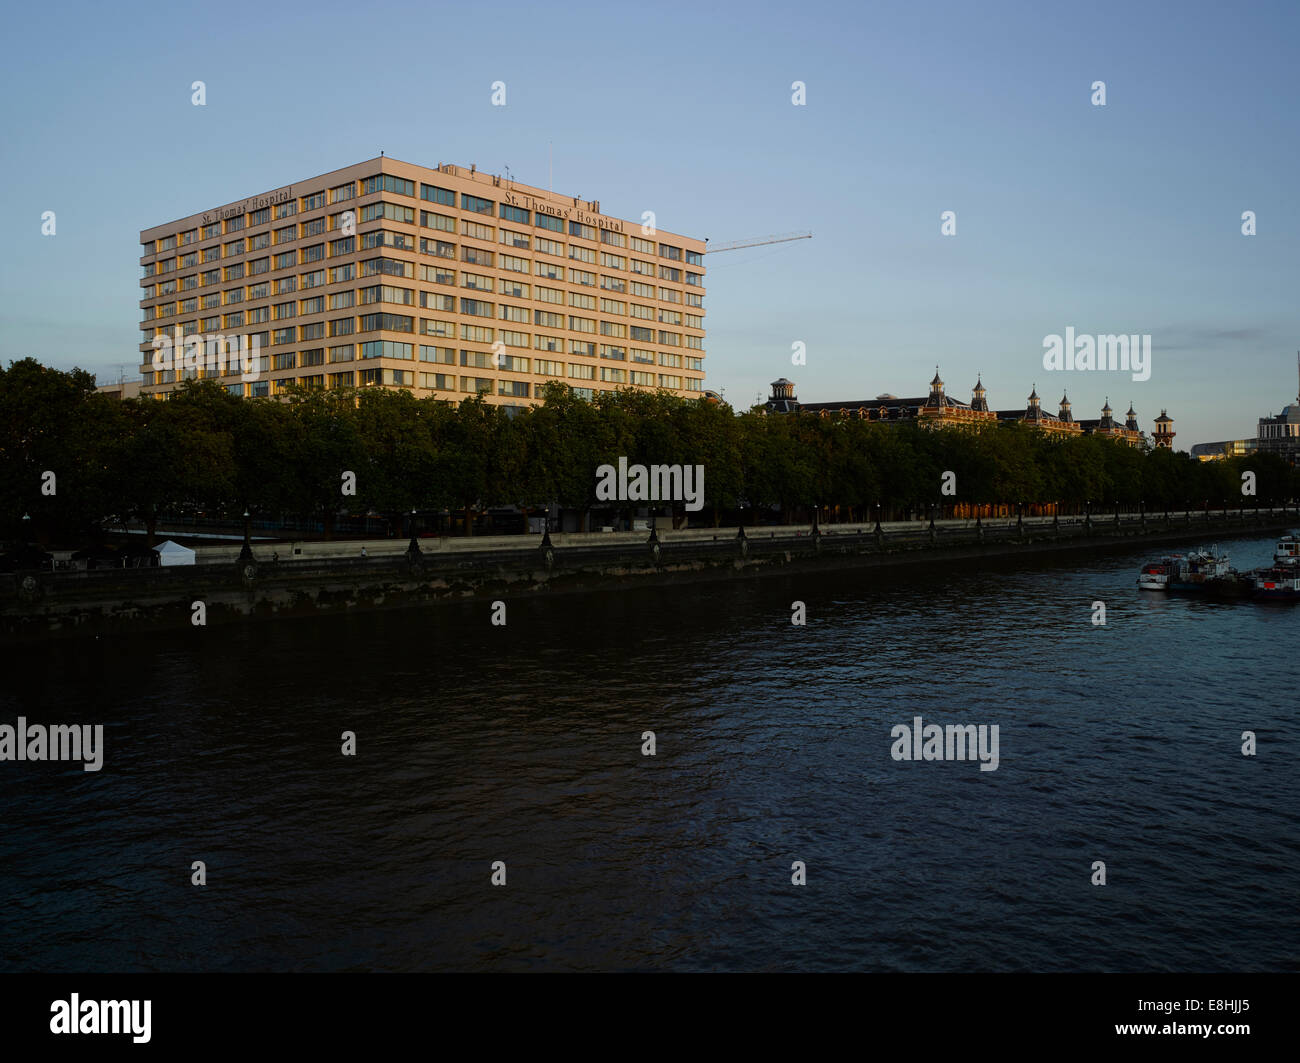 St Thomas' Hospital, London, from Westminster Bridge - Stock Image